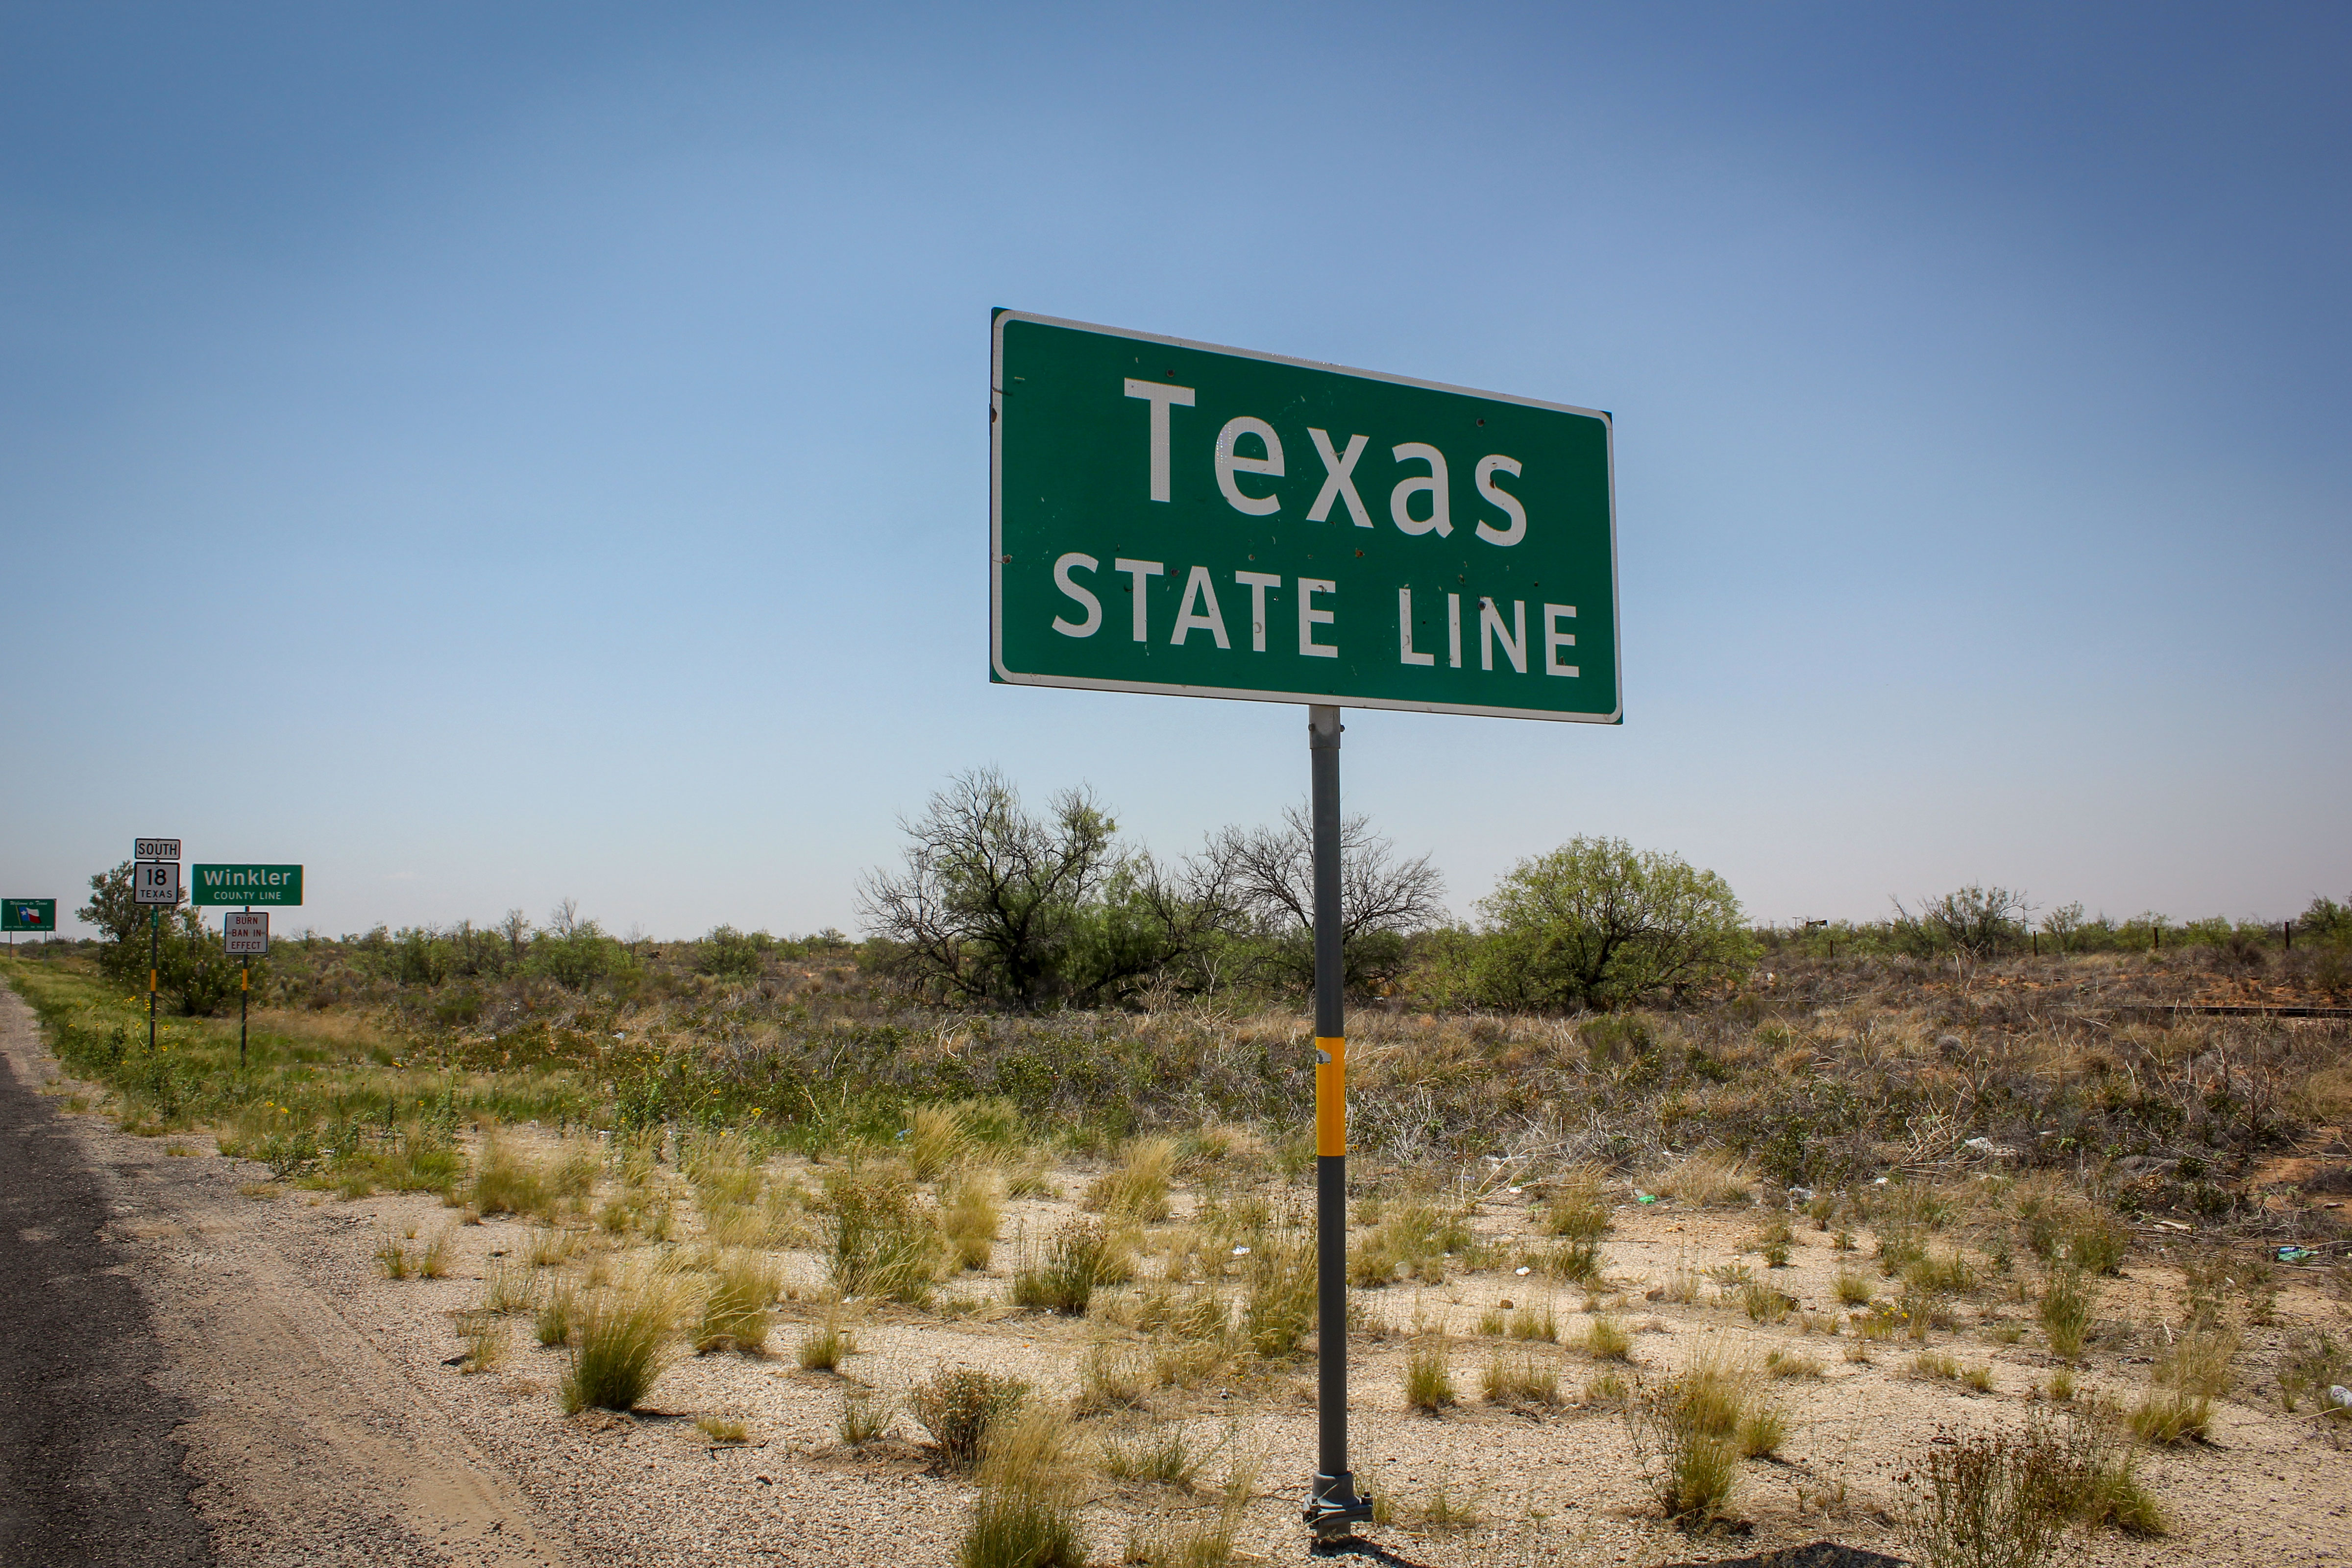 <p>A sign marks the Texas state line along the border of New Mexico.</p>